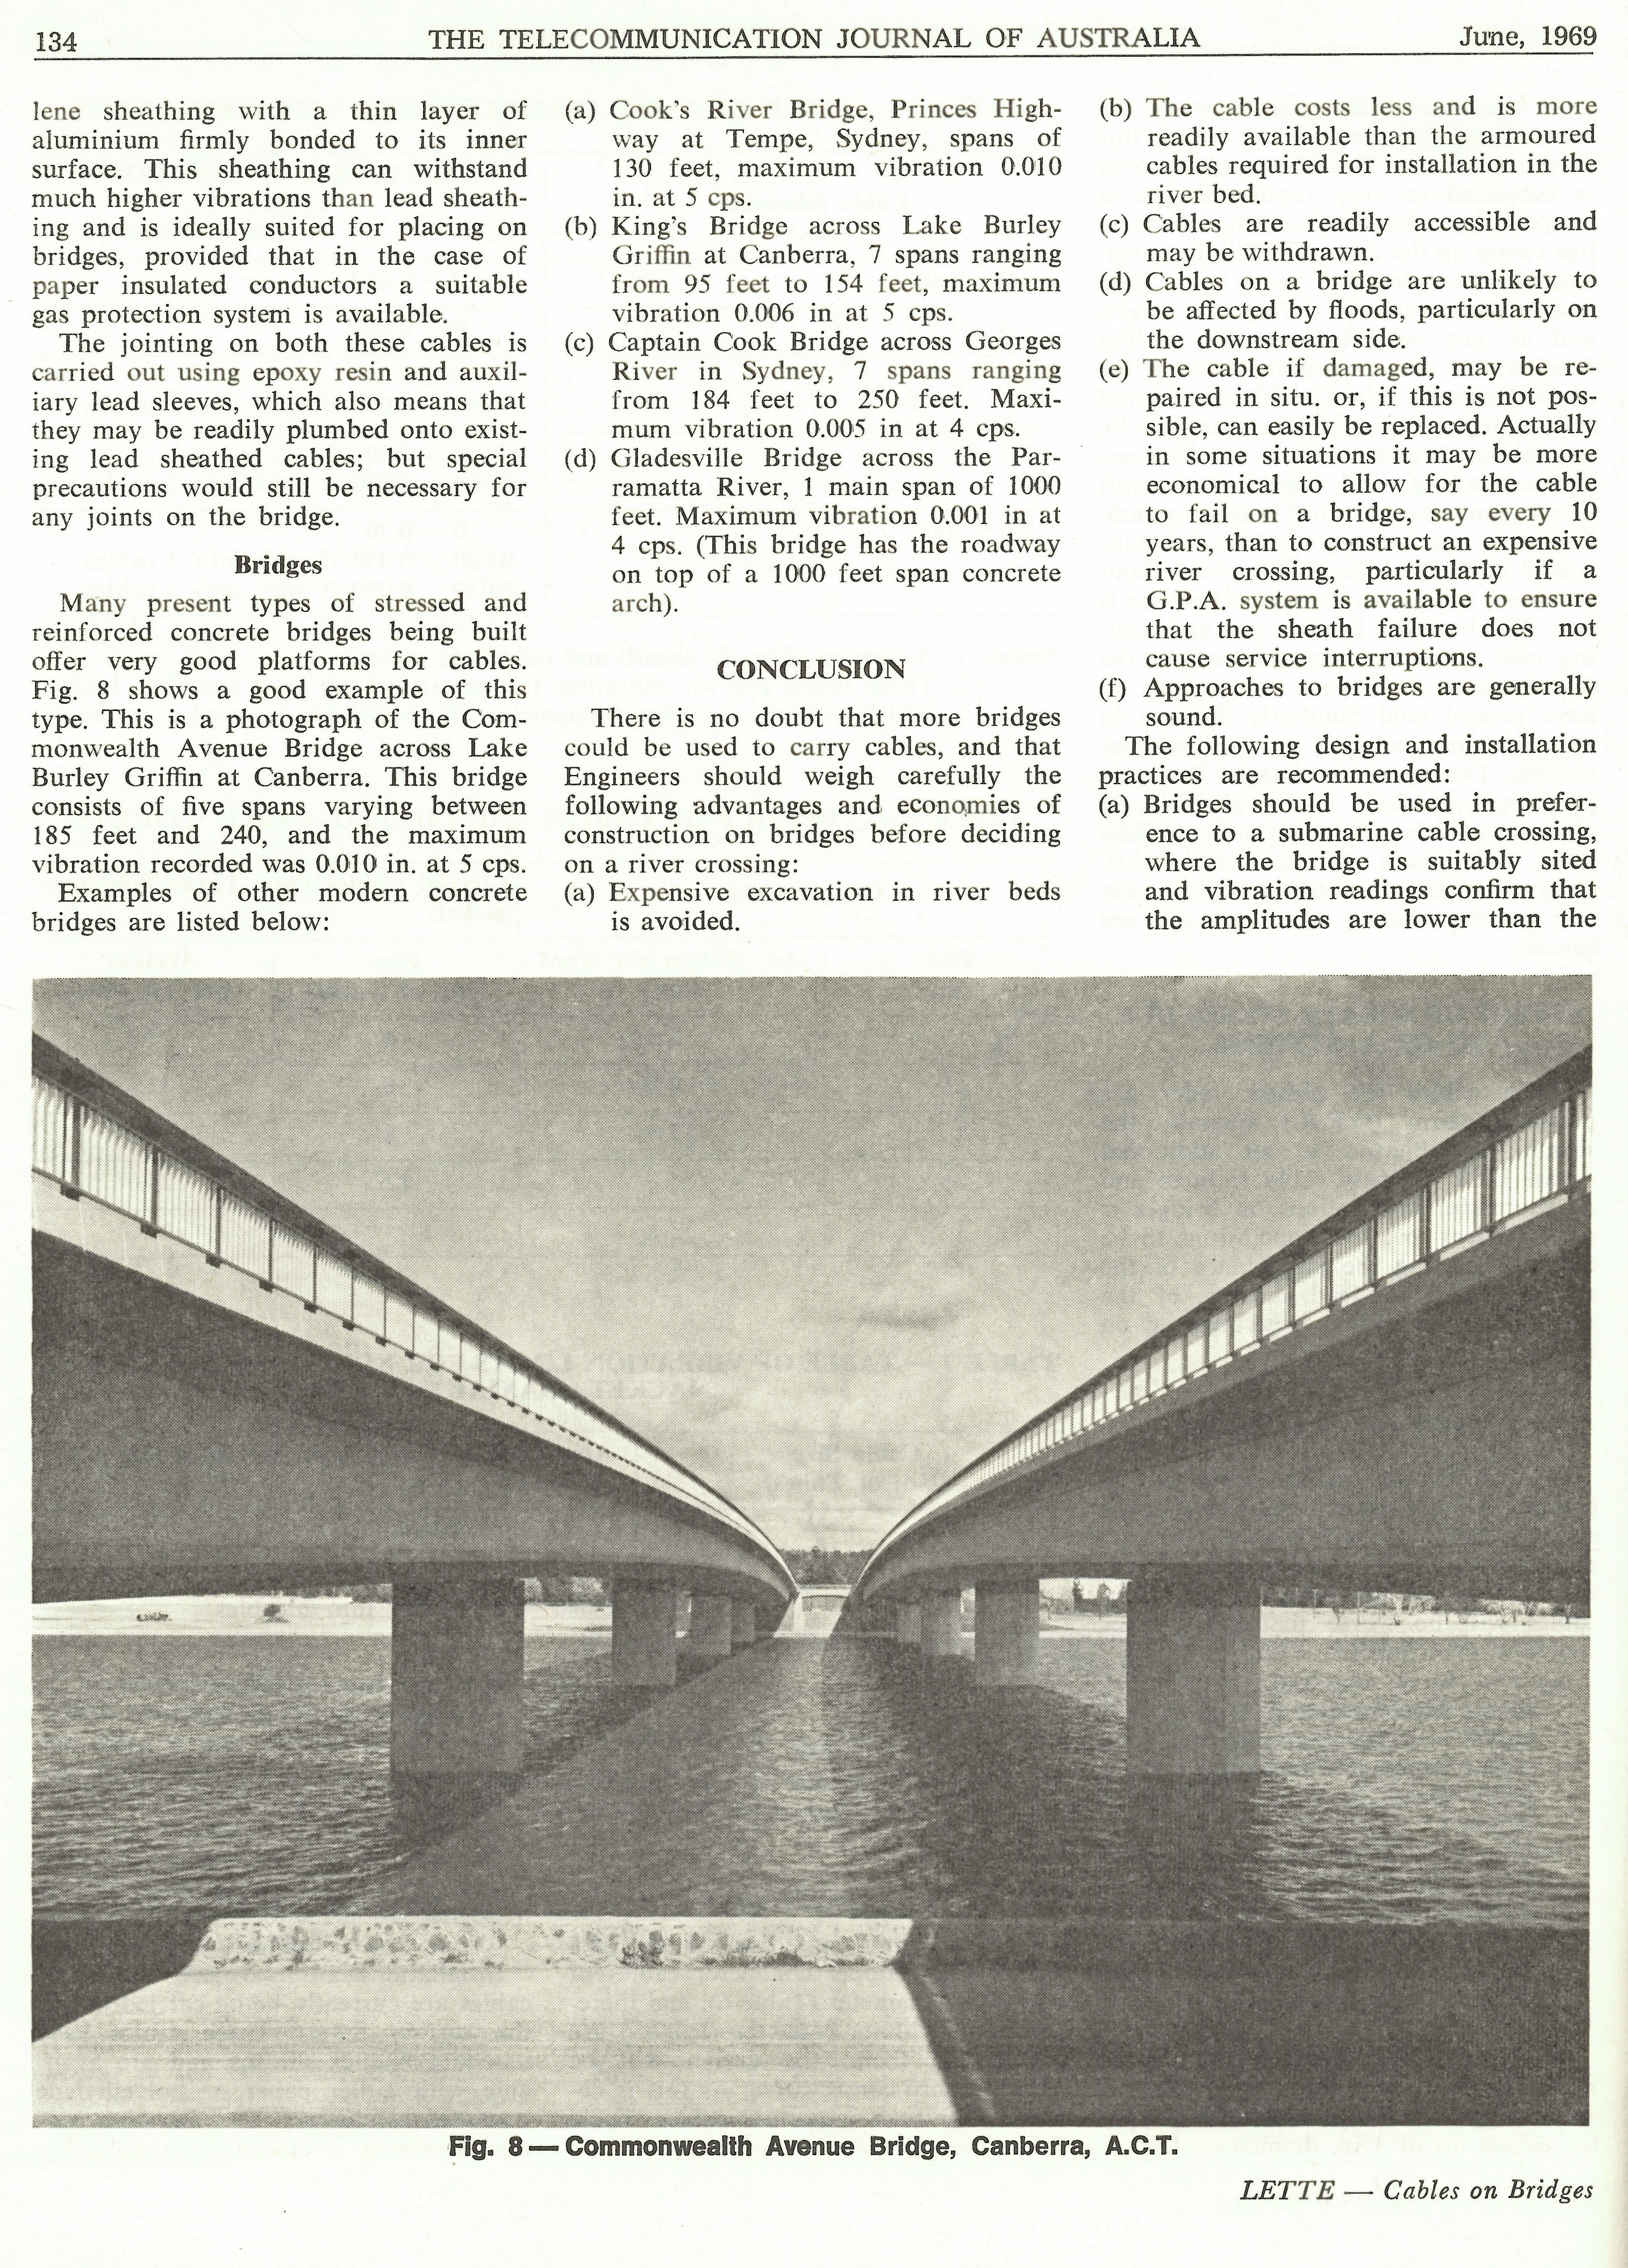 Lead Sheathed Cables on Bridges, Page 134